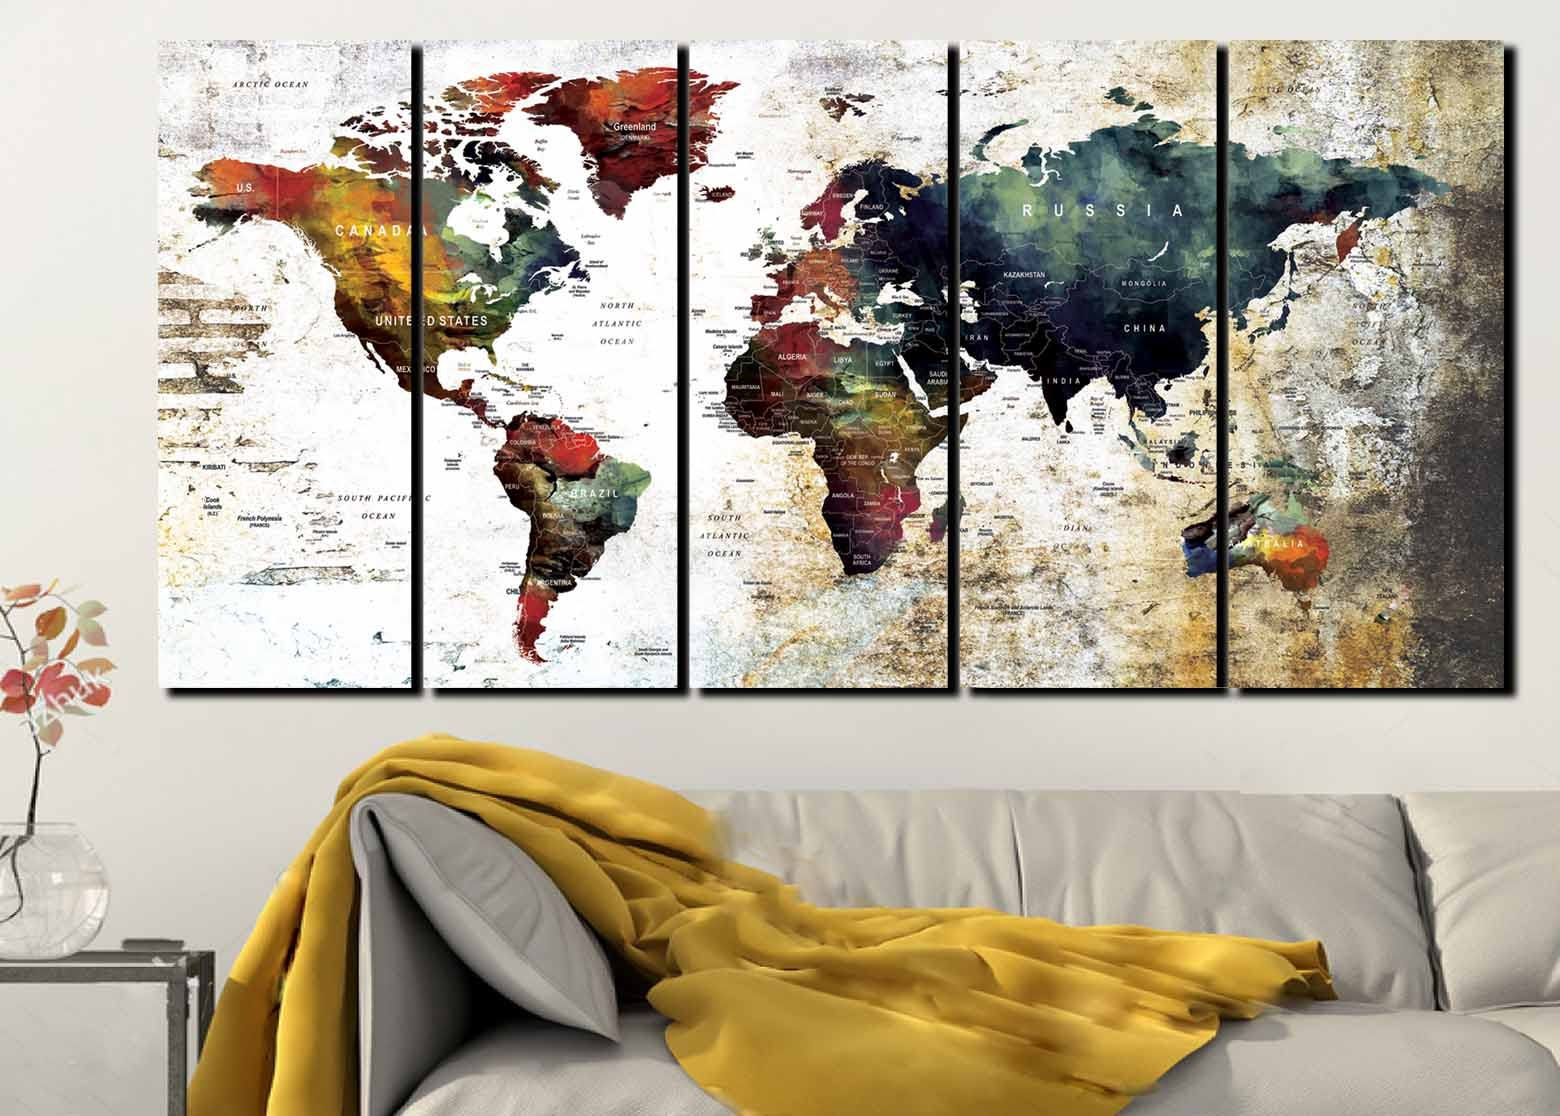 World map wall artworld map canvaslarge world mapworld map art gallery photo gallery photo gallery photo gallery photo gumiabroncs Choice Image